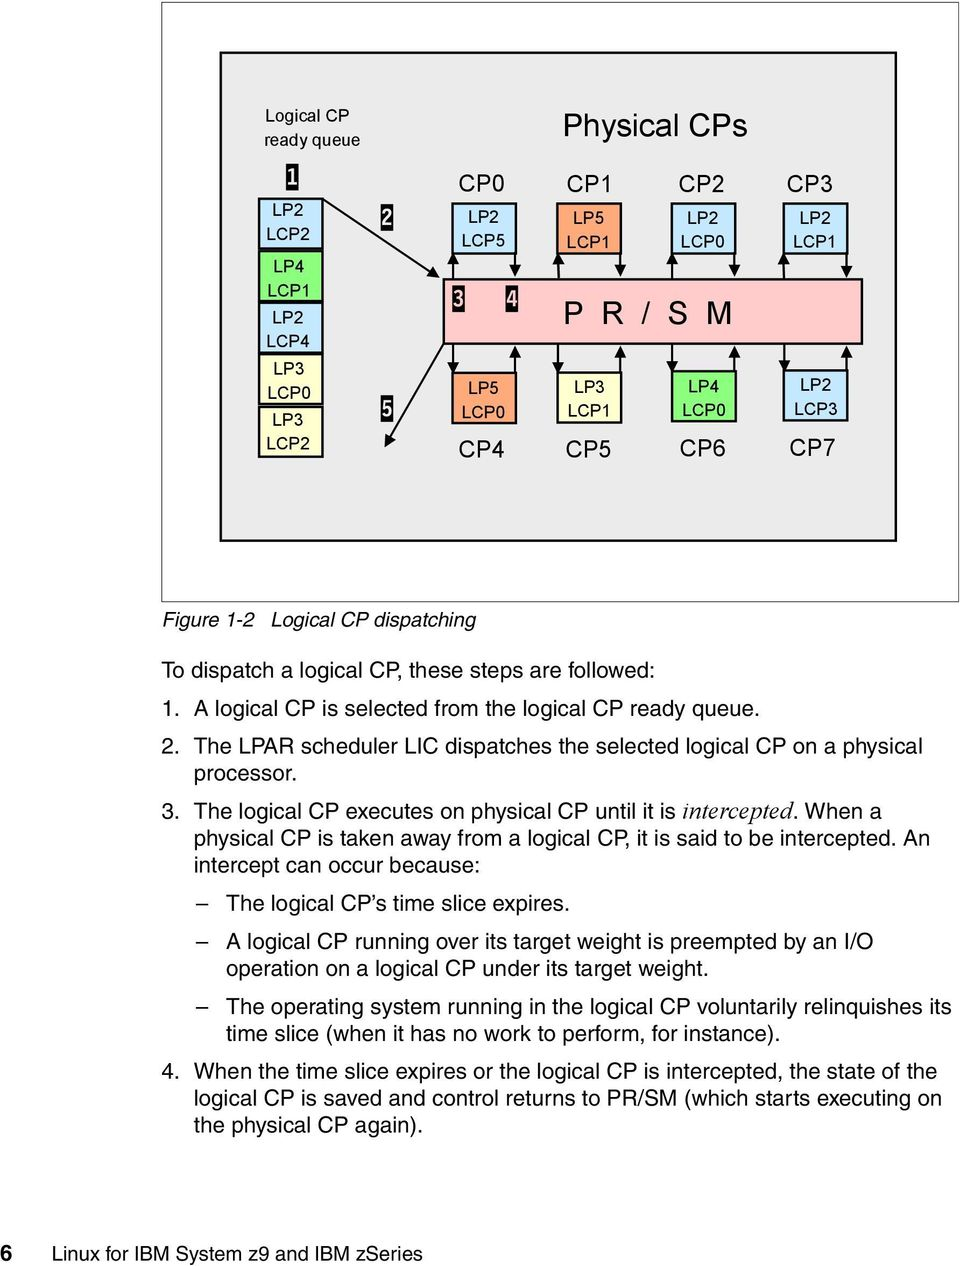 The LPAR scheduler LIC dispatches the selected logical CP on a physical processor. 3. The logical CP executes on physical CP until it is intercepted.